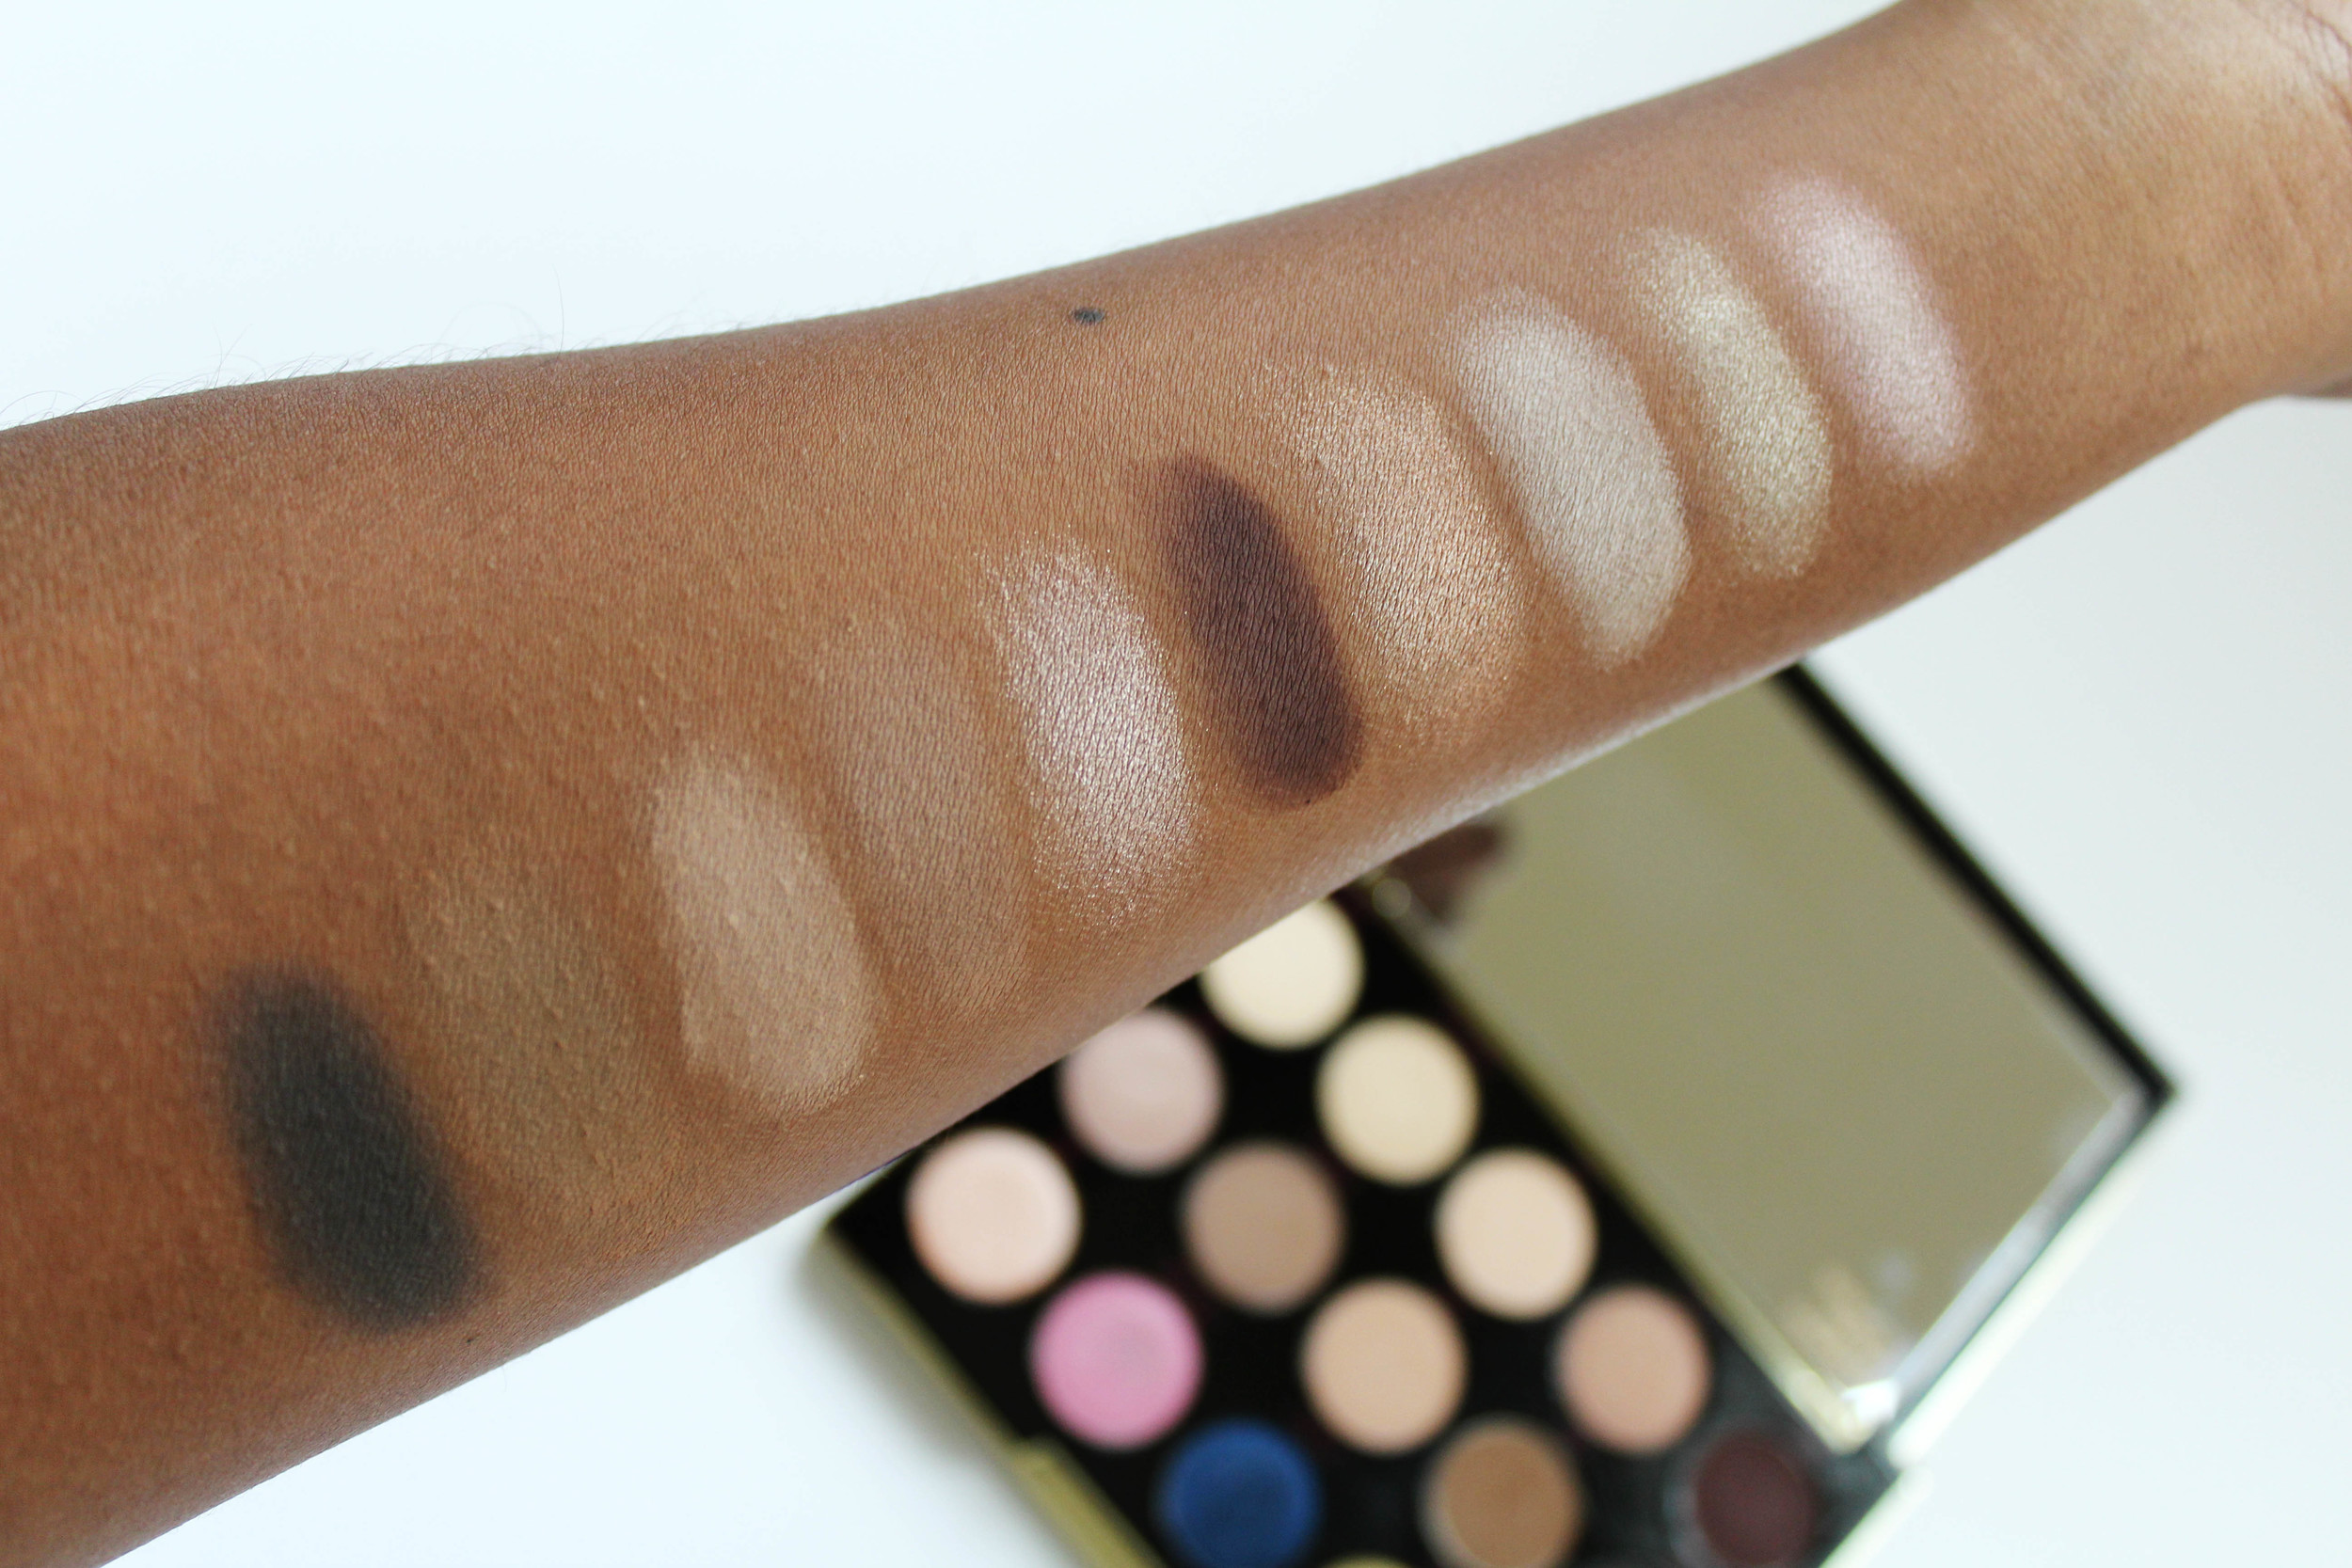 Swatches (rows 1 and 2; left to right): Serious, Zone, Skark, Anaheim, Baby, Punk, Steady, Skimp, Bathwater, Blonde